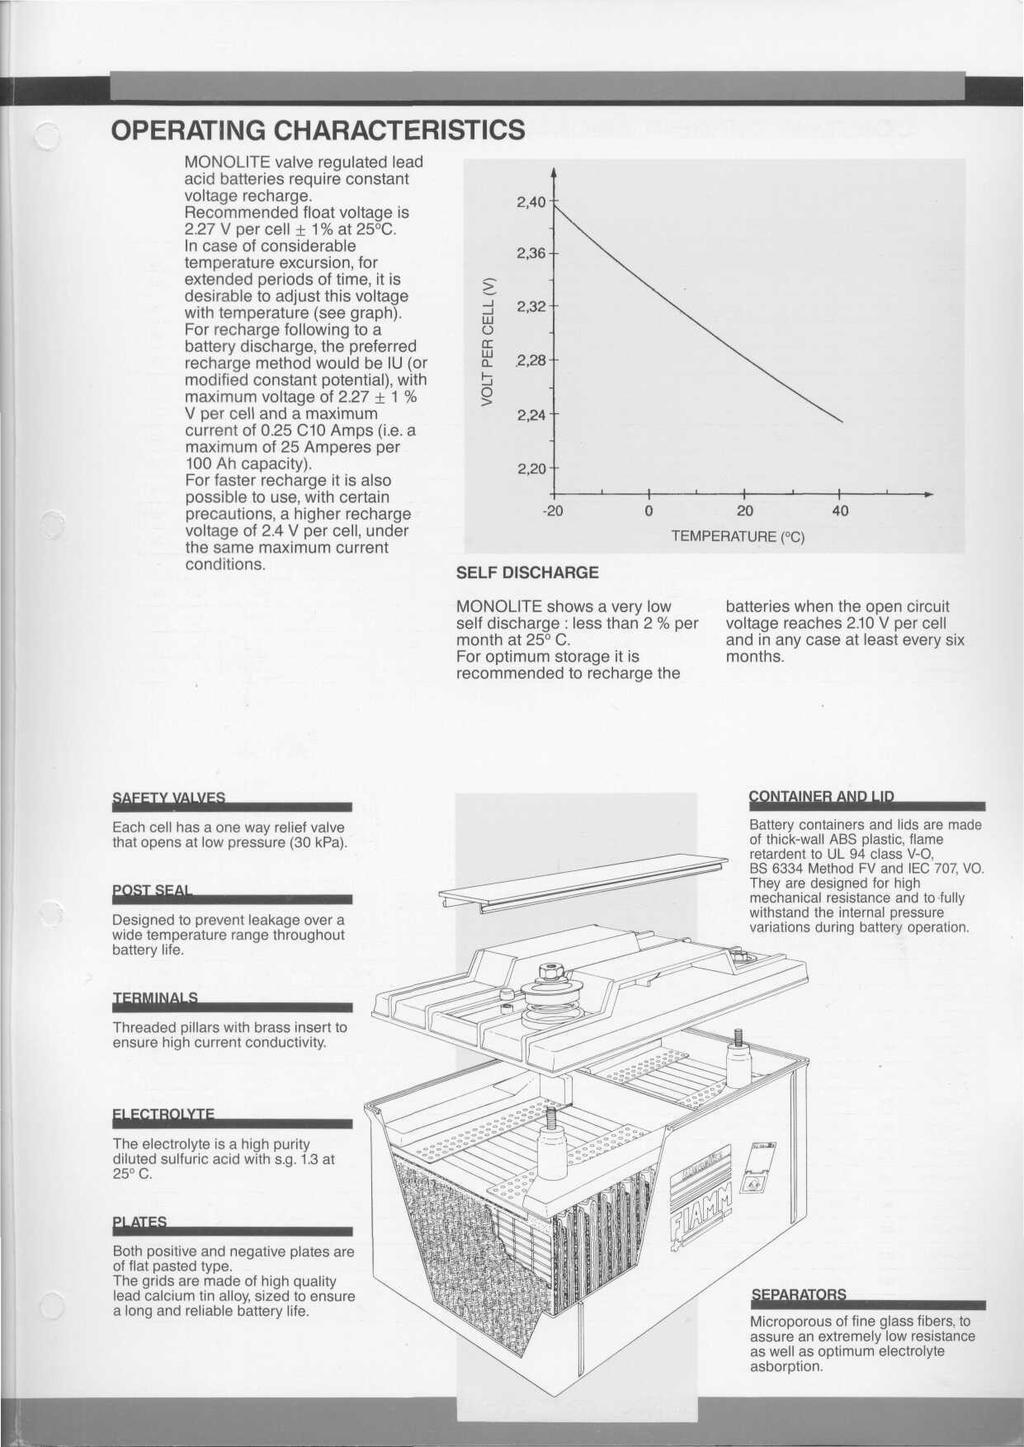 OPERATING CHARACTERISTICS MONOLITE valve regulated lead acid batteries require constant voltage recharge. Recommended float voltage is 2.27 V per cell + 1%at25 C.